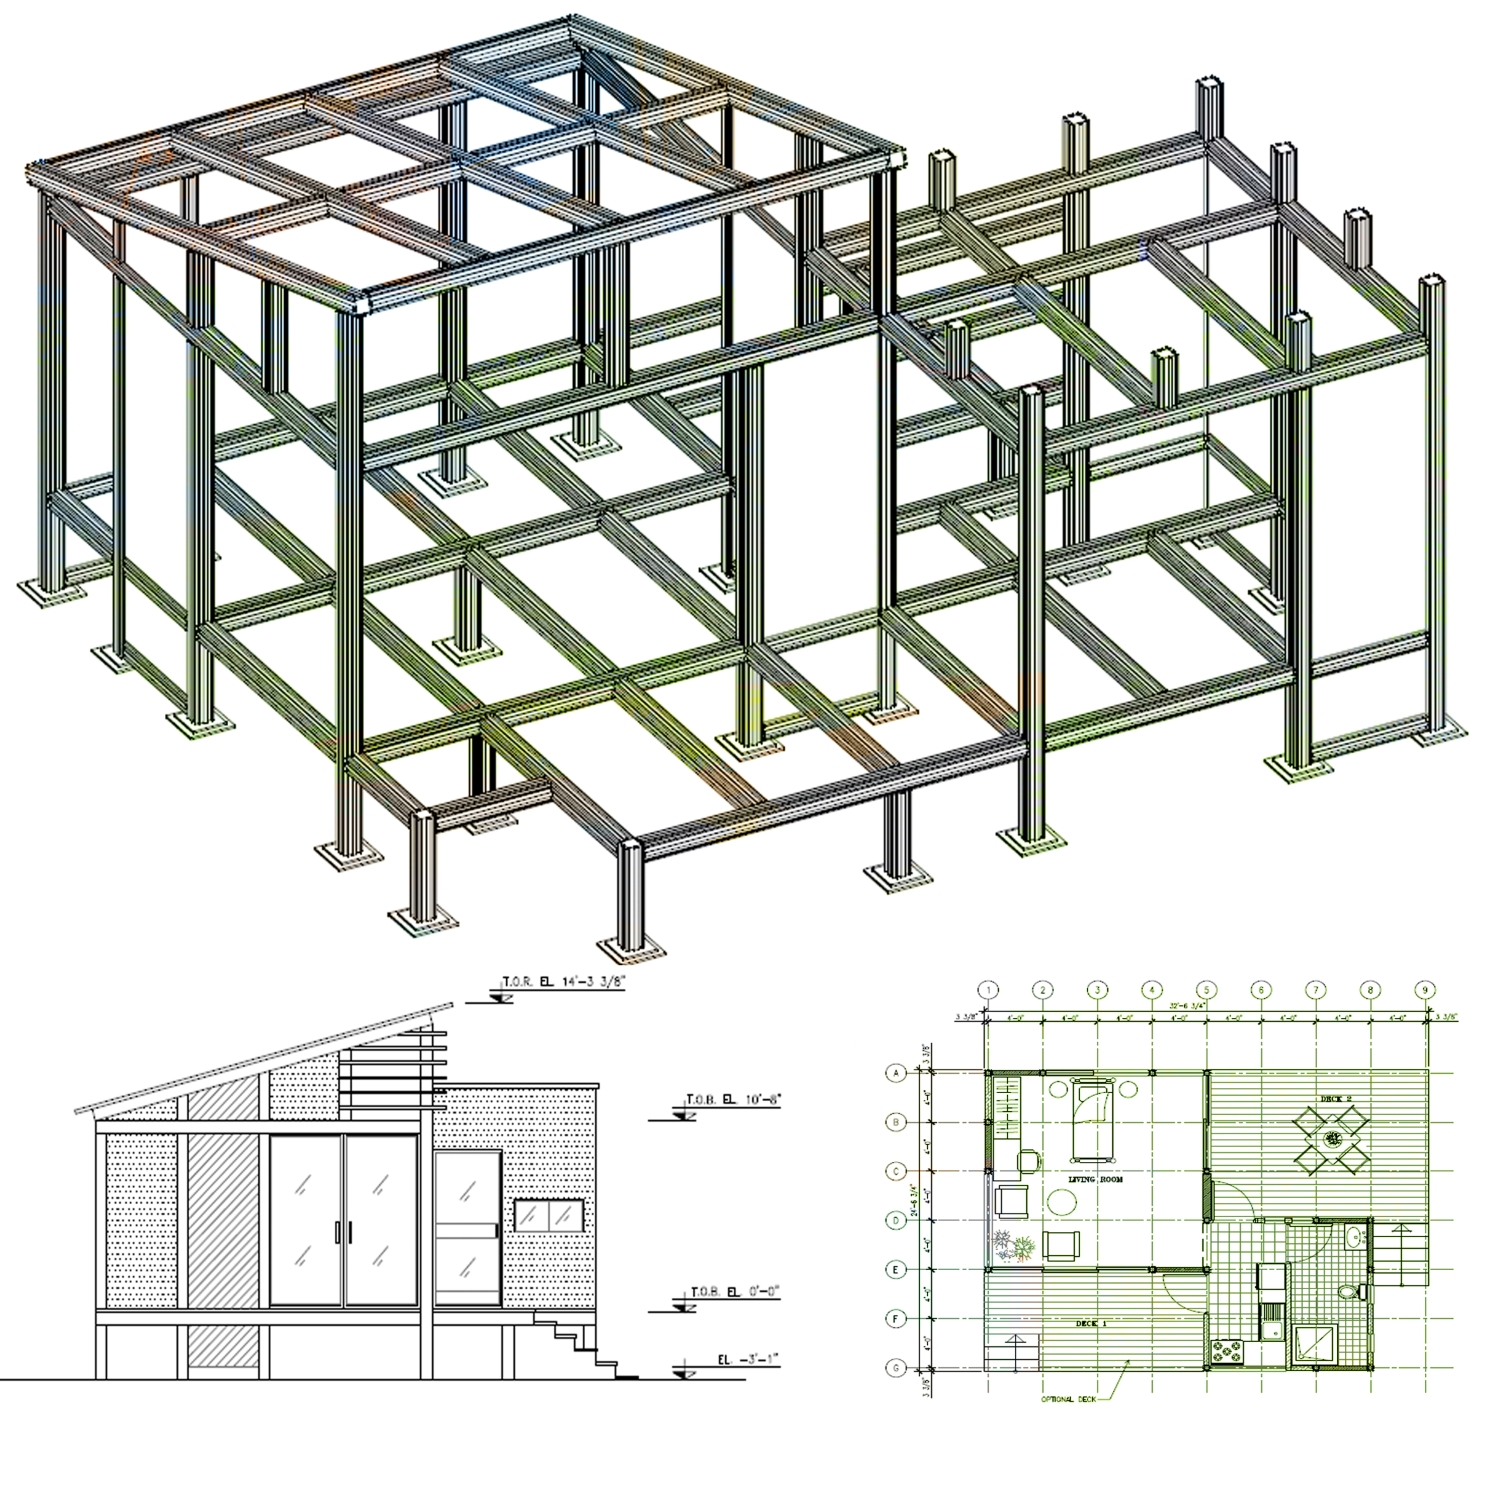 Structural Framing Systems : Mhs building systems structural aluminum framing